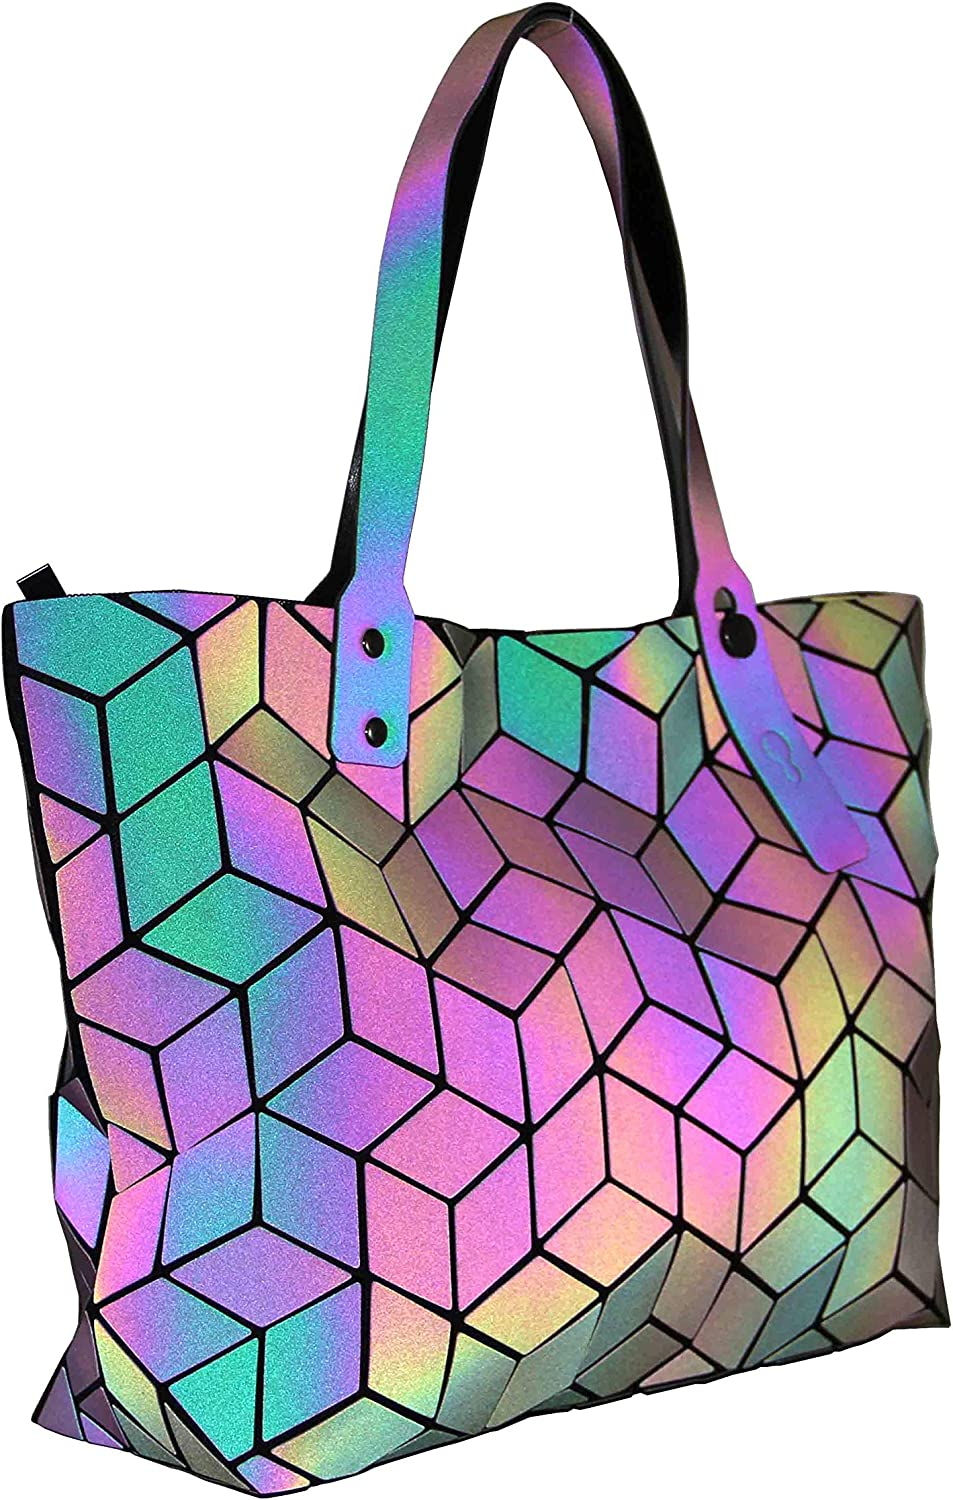 Fashion Backpack Collection Geometric Luminous backpack Reflective Purse Tote Bag Holographic Wallet Laser Backpack for women